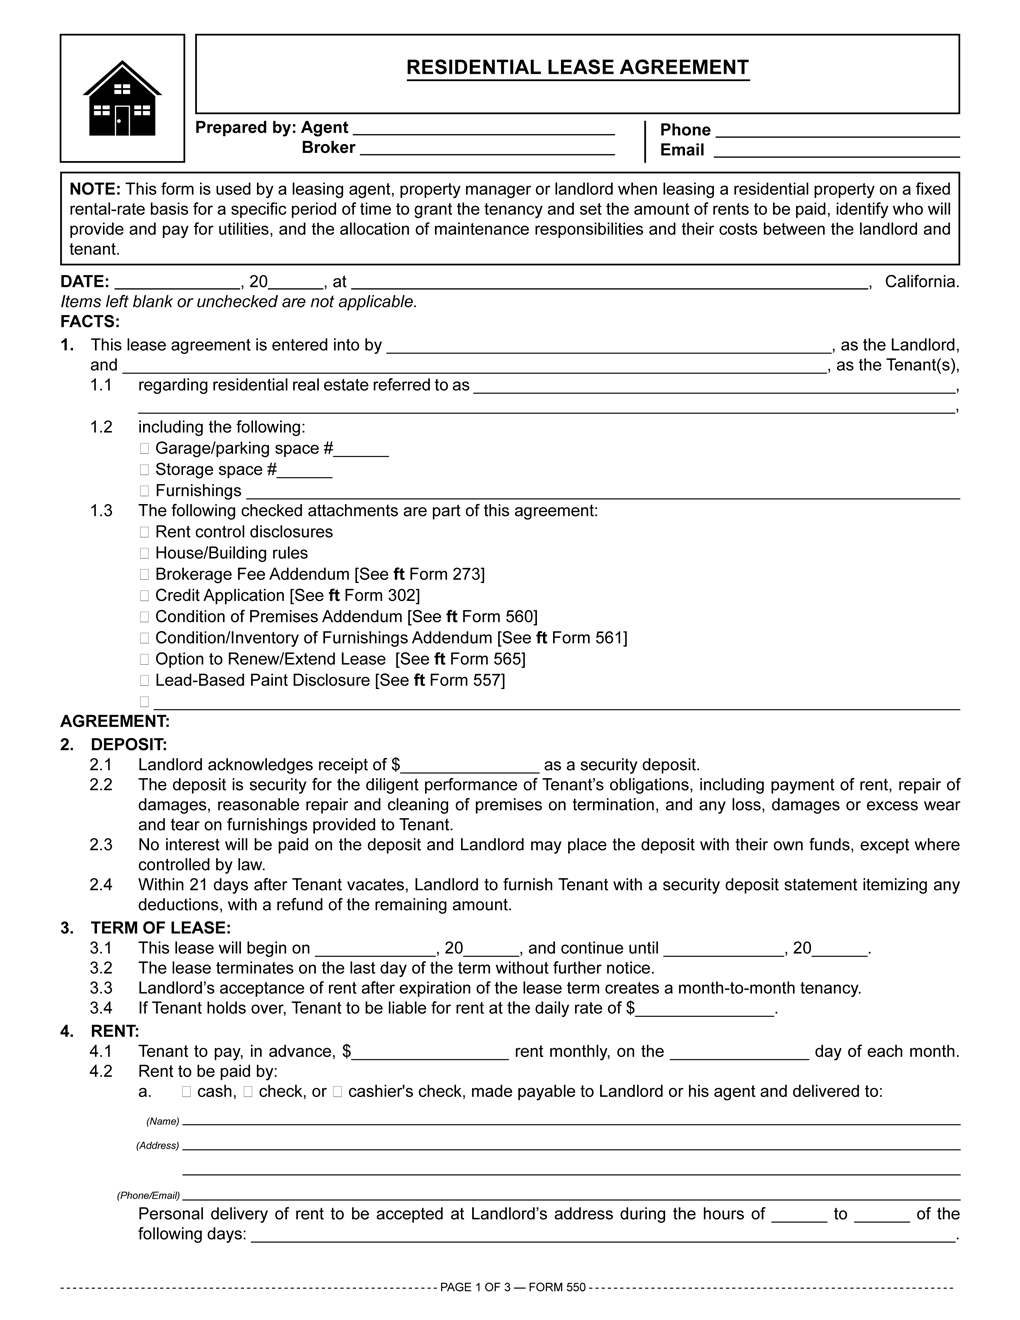 residential leasing agreement template